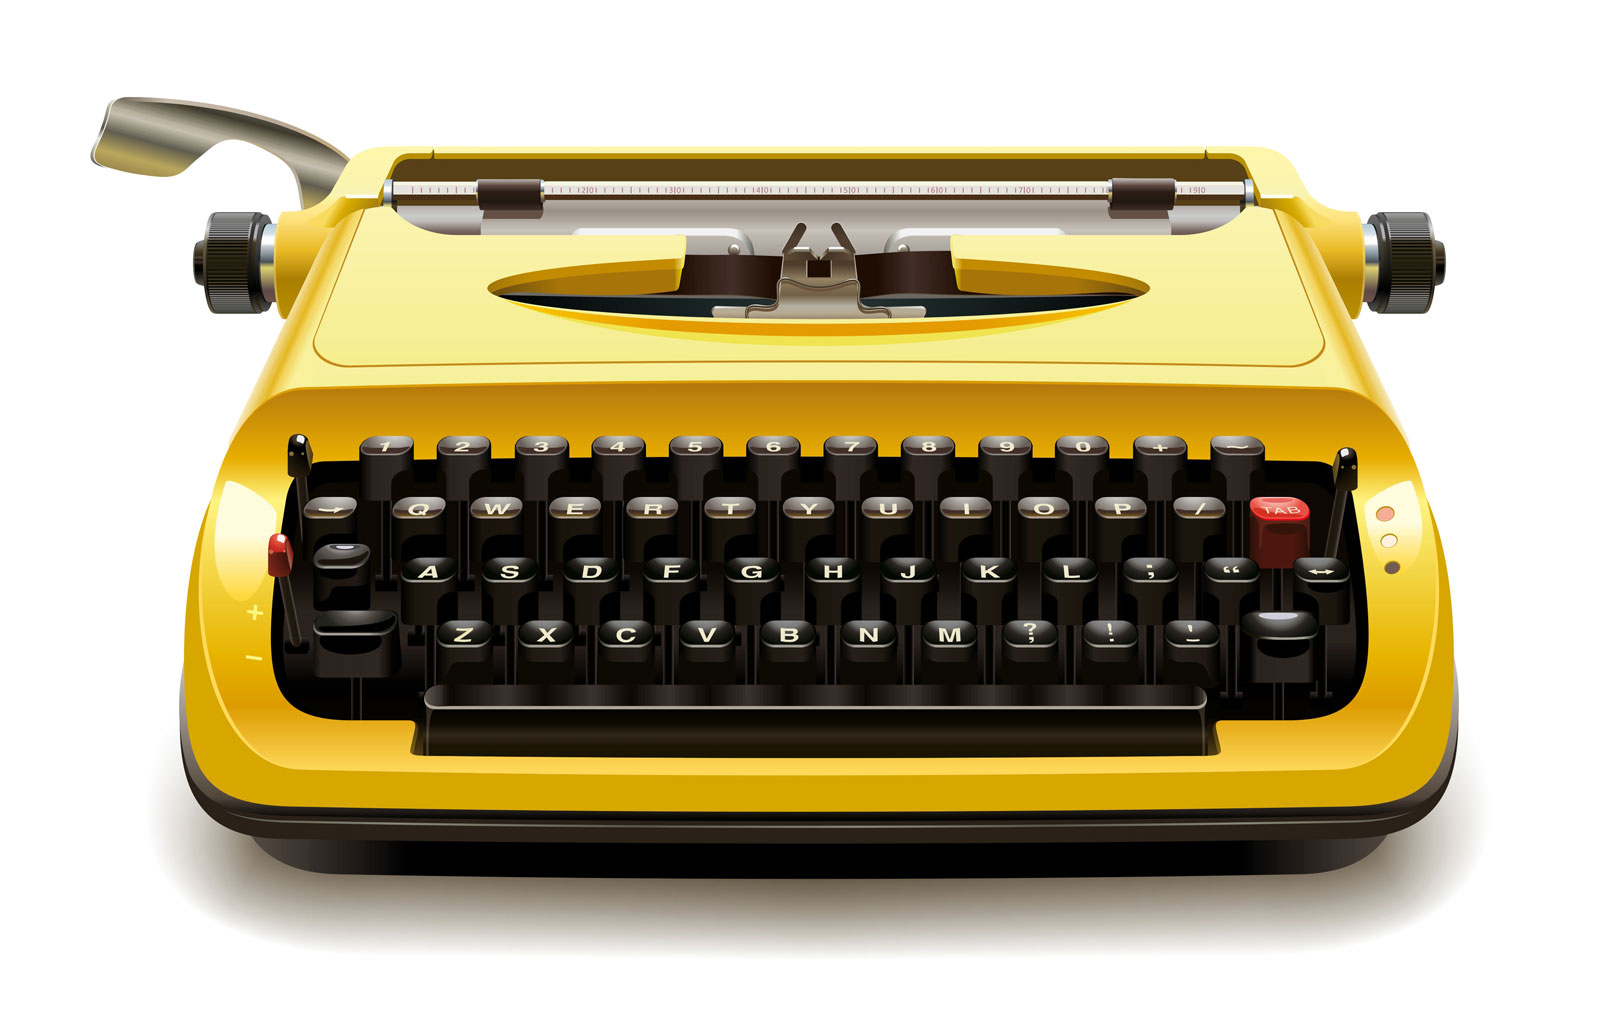 Typewriter InnovelSoft